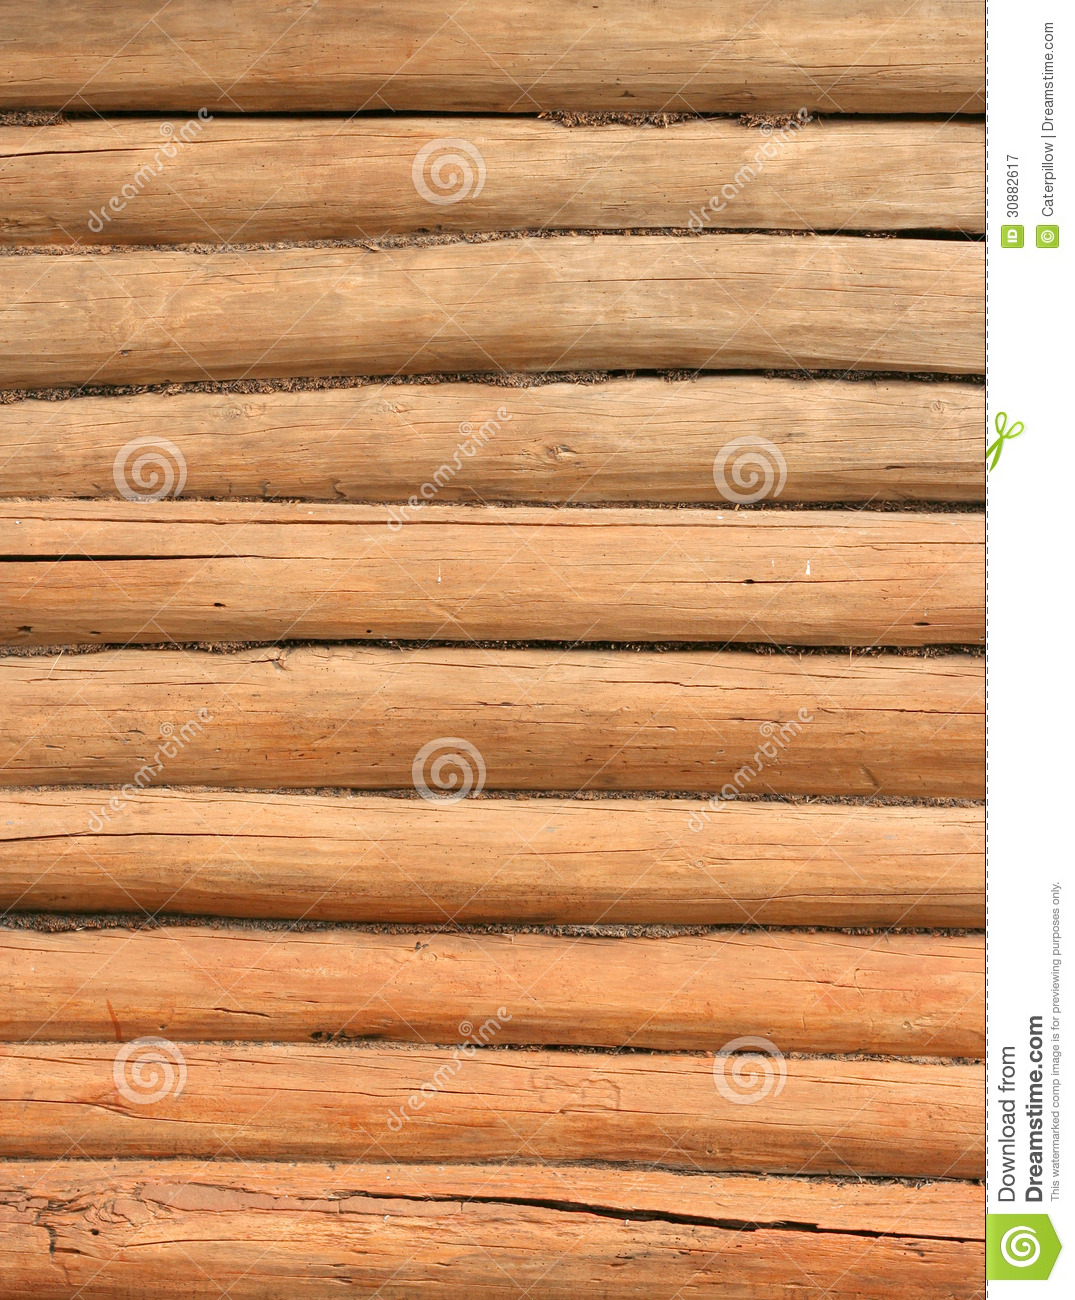 texture en bois de mur de rondin verticale image stock image 30882617. Black Bedroom Furniture Sets. Home Design Ideas